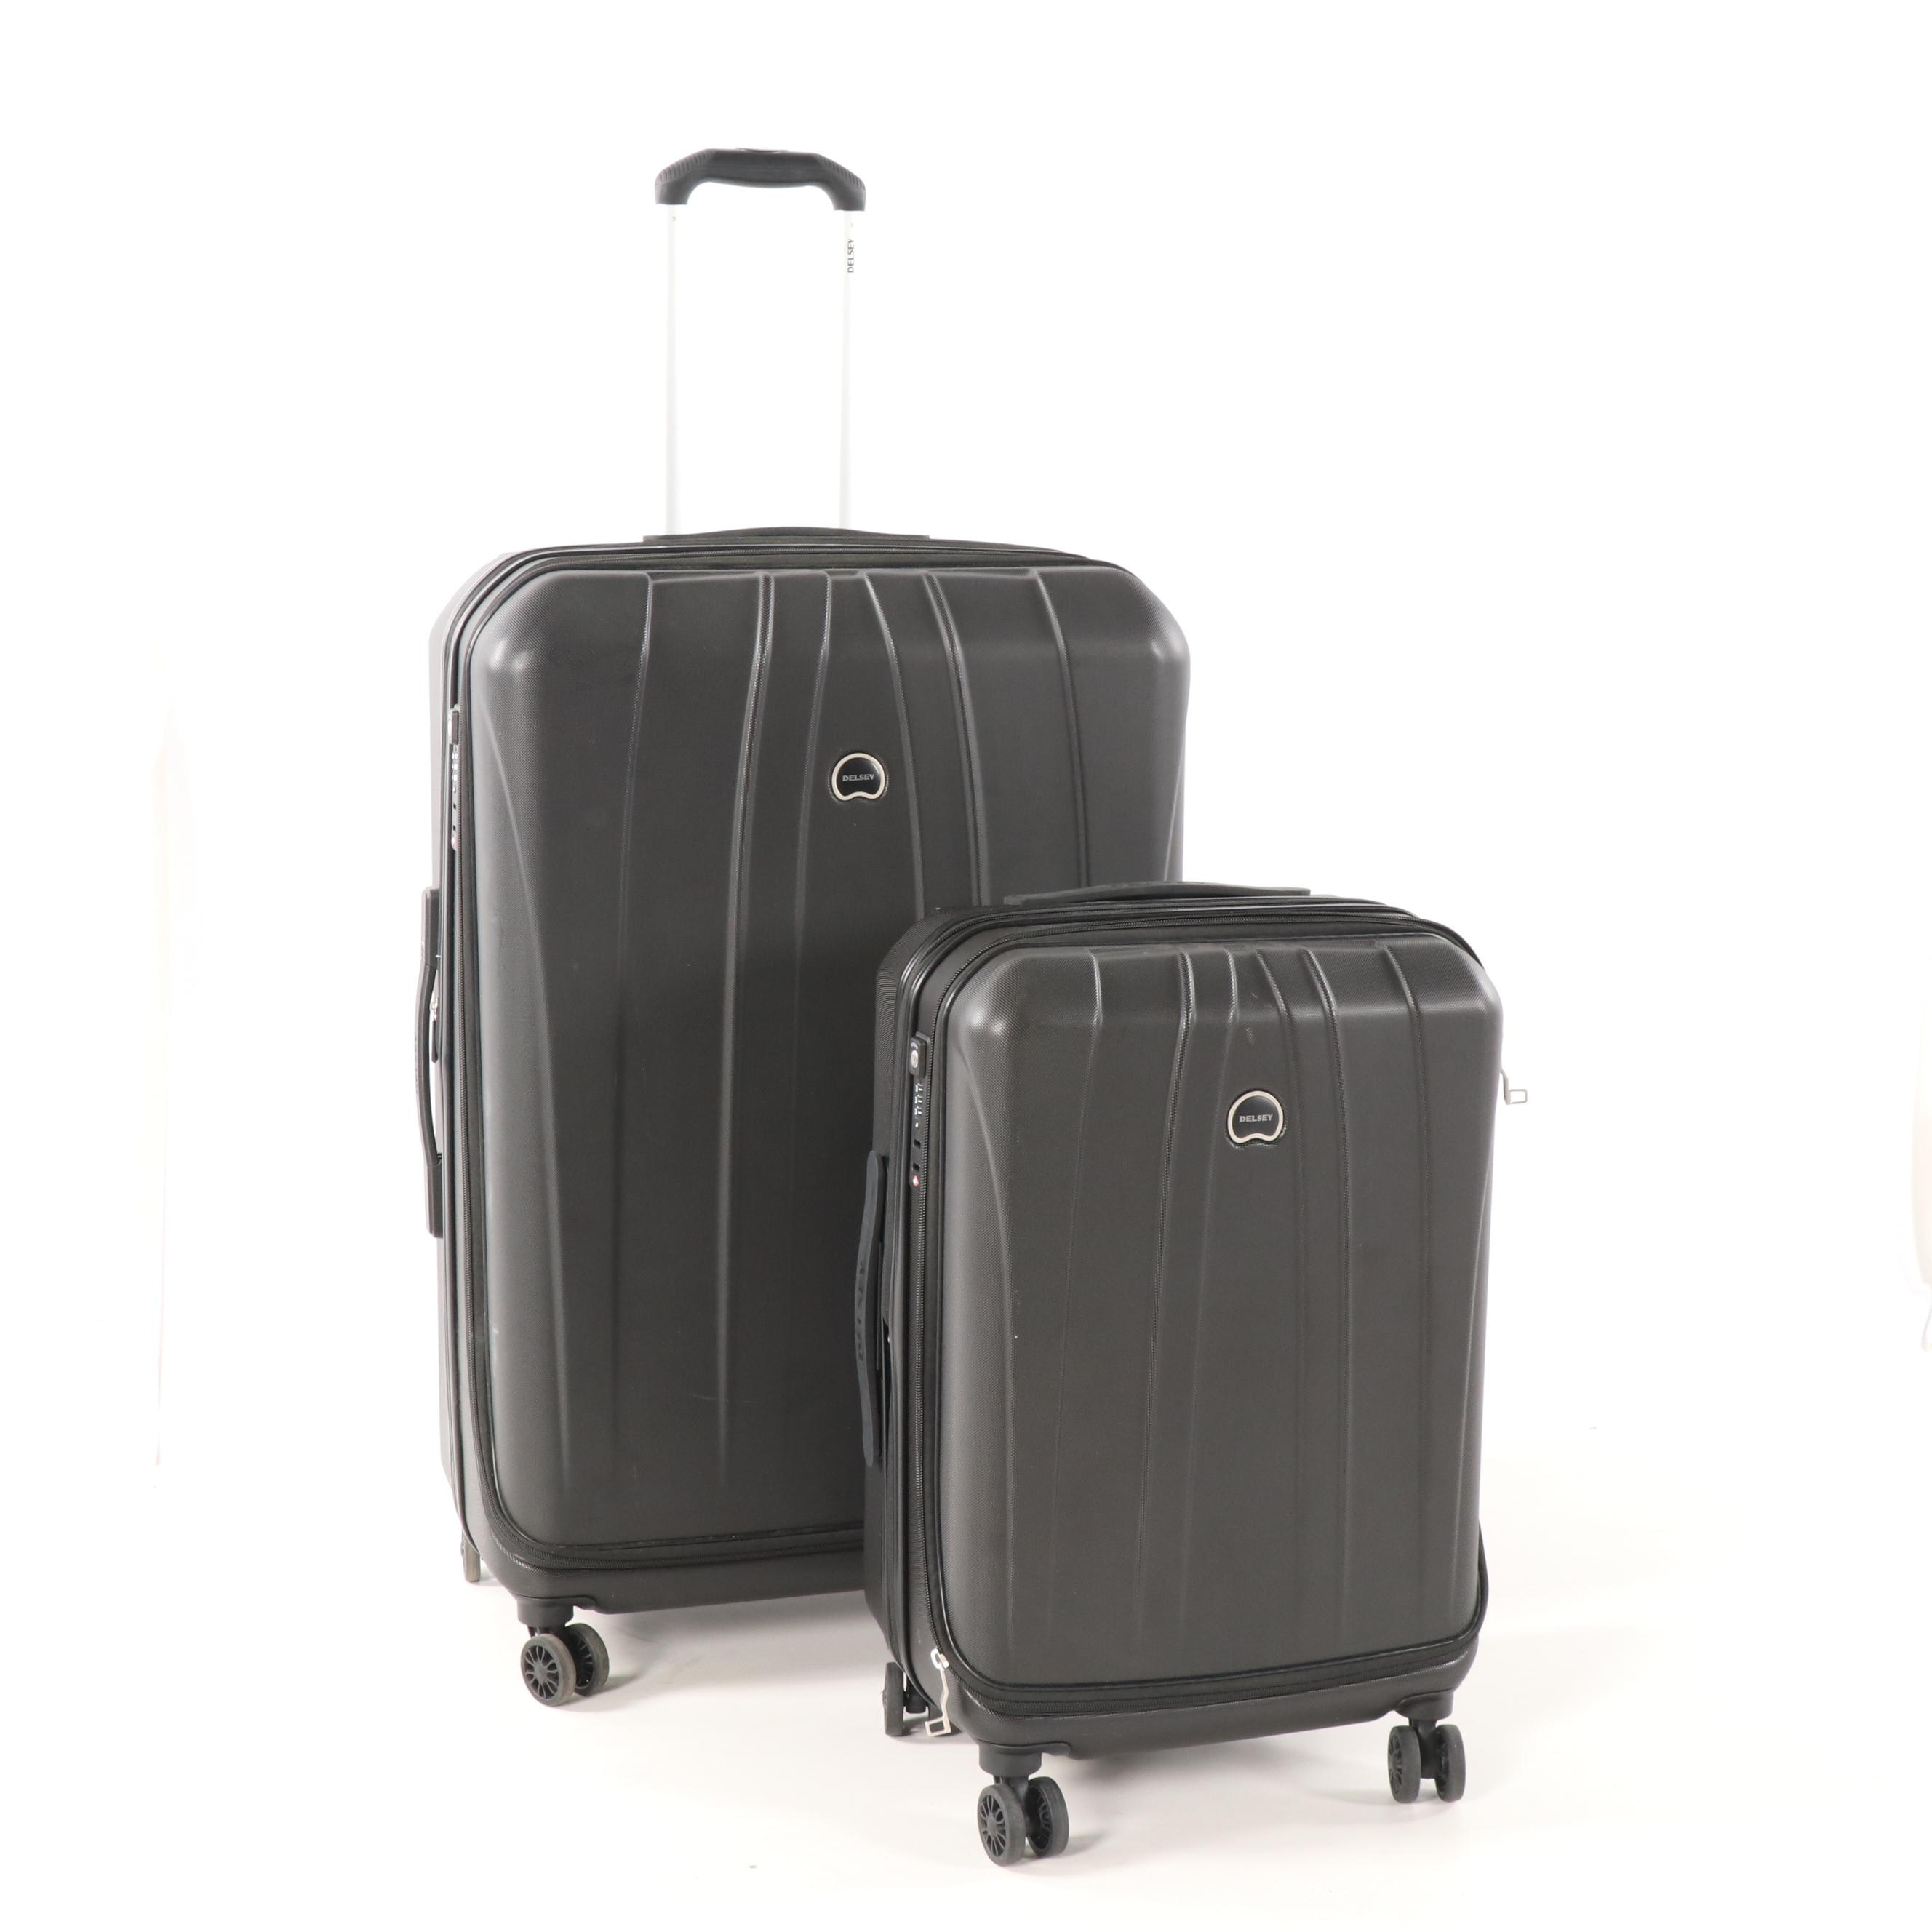 Delsey Harside Spinner Two-Piece Luggage Set